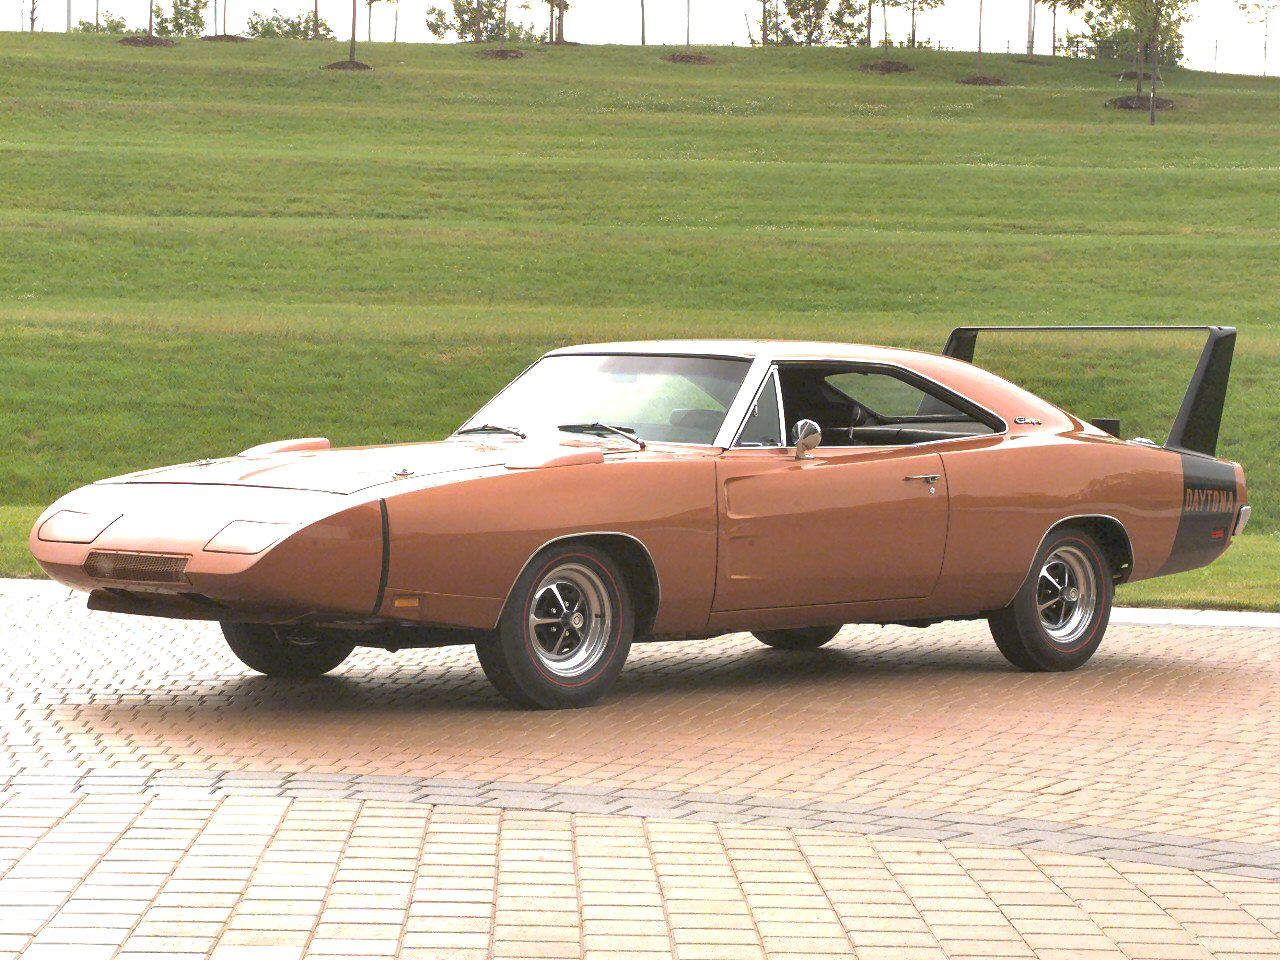 1969 dodge charger daytona copper exterior. Cars Review. Best American Auto & Cars Review